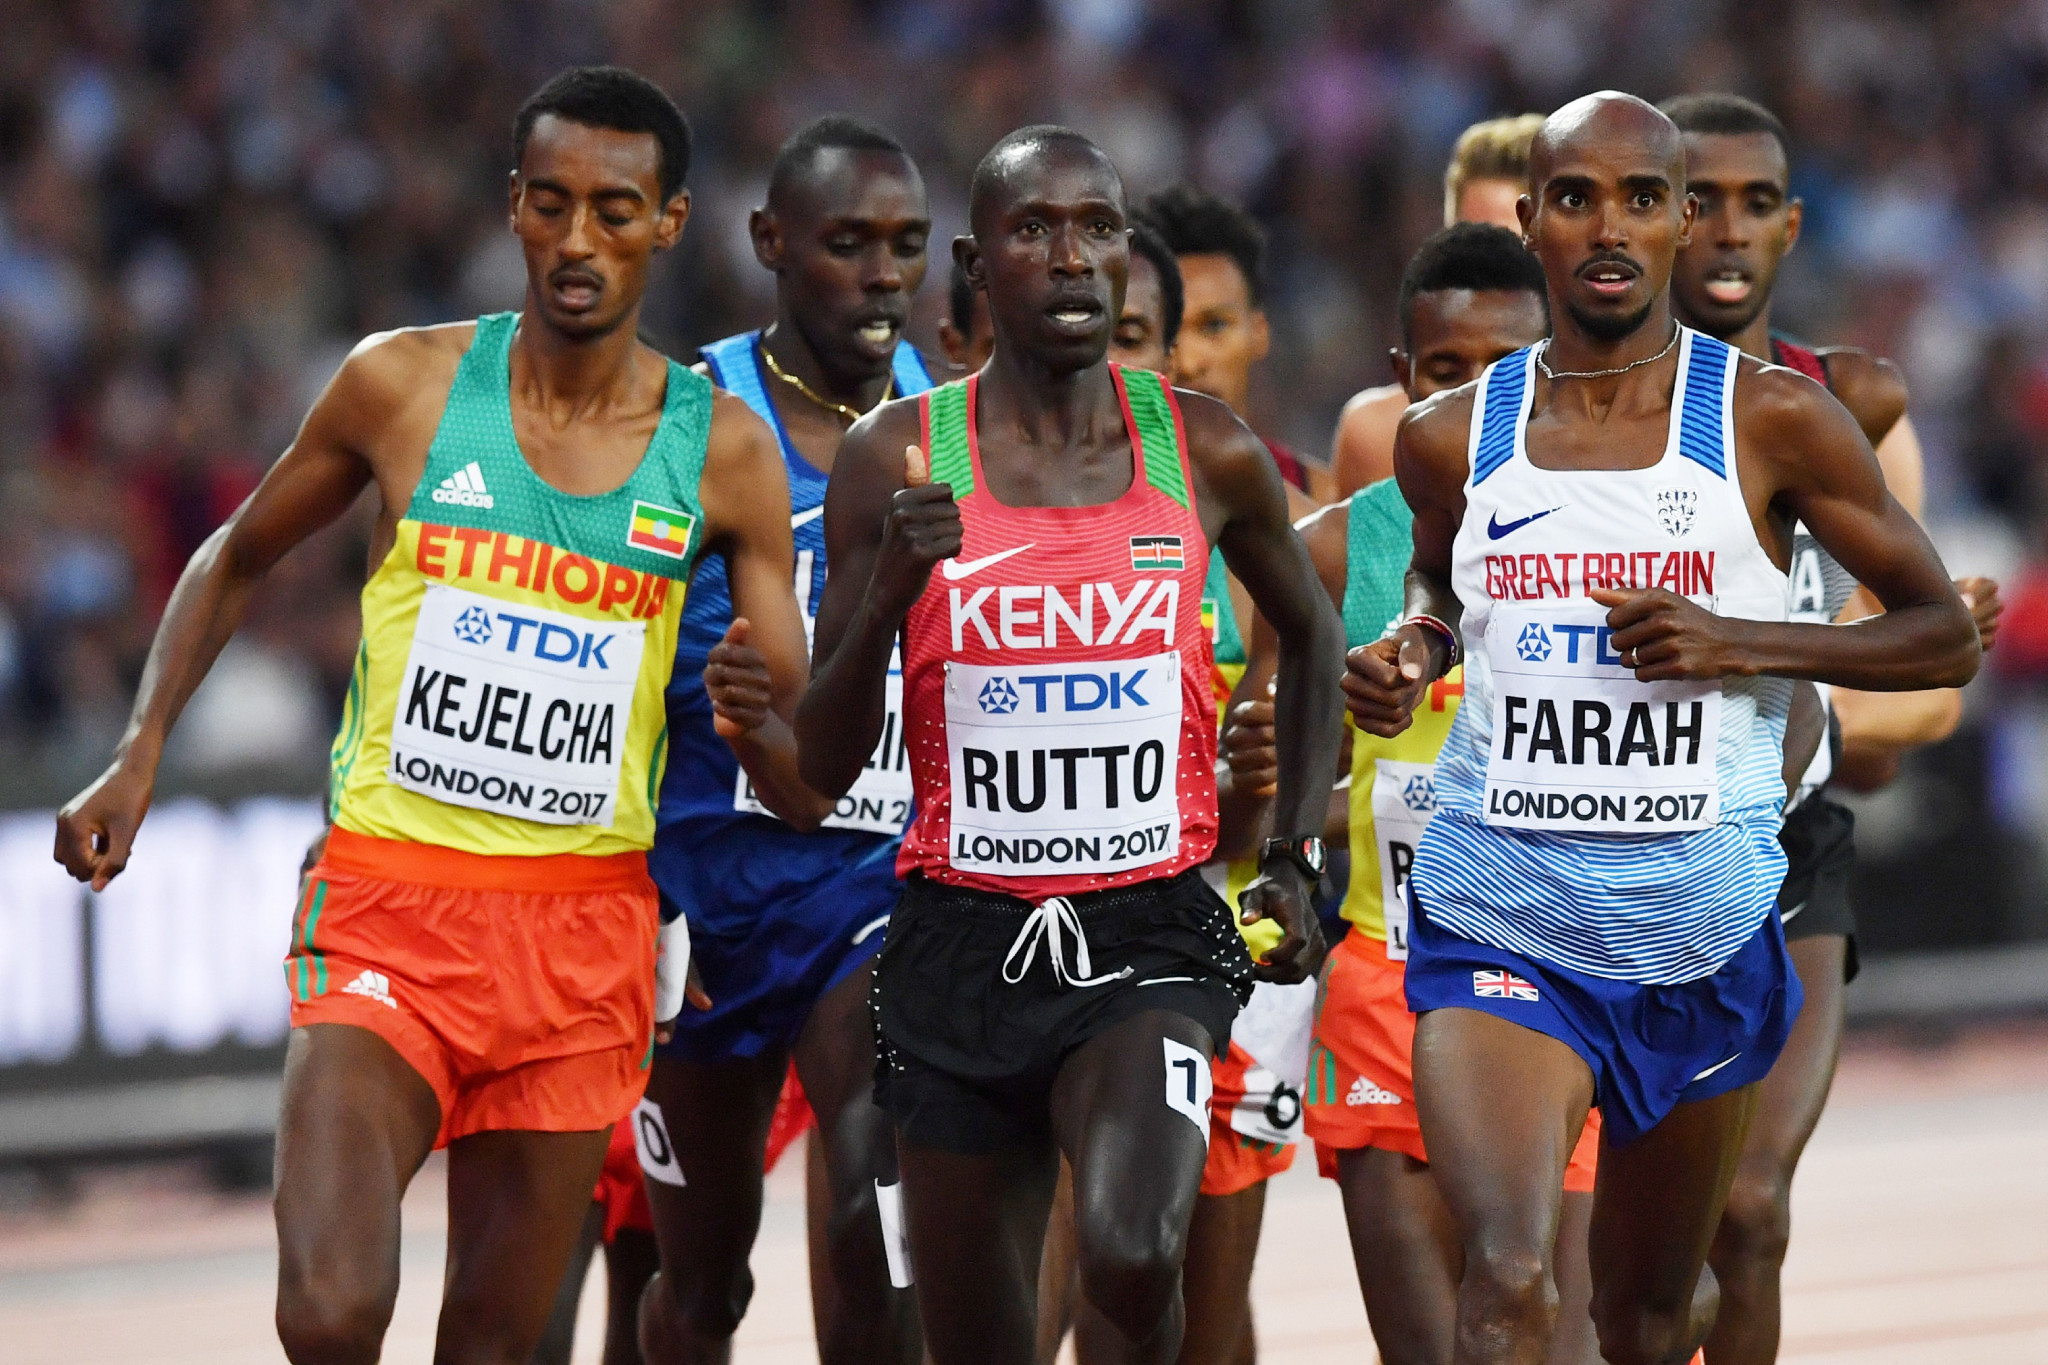 Cyrus Rutto has become the latest Kenyan distance runner to be provisionally suspended in a doping case ©Getty Images